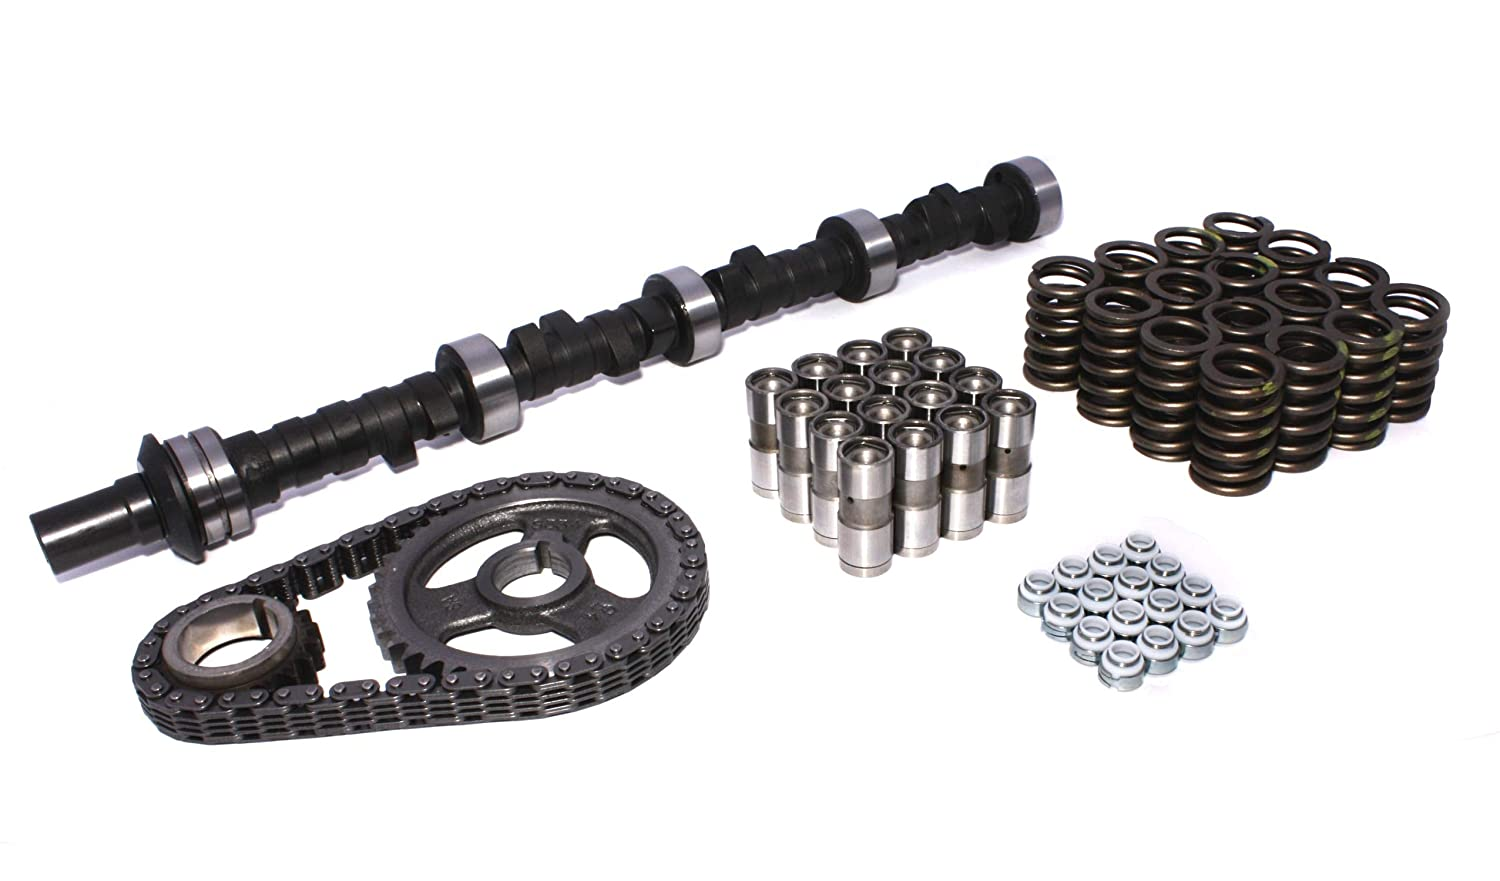 COMP Cams CL92-203-4 High Energy 218//218 Hydraulic Flat Cam and Lifter Kit for Buick 350